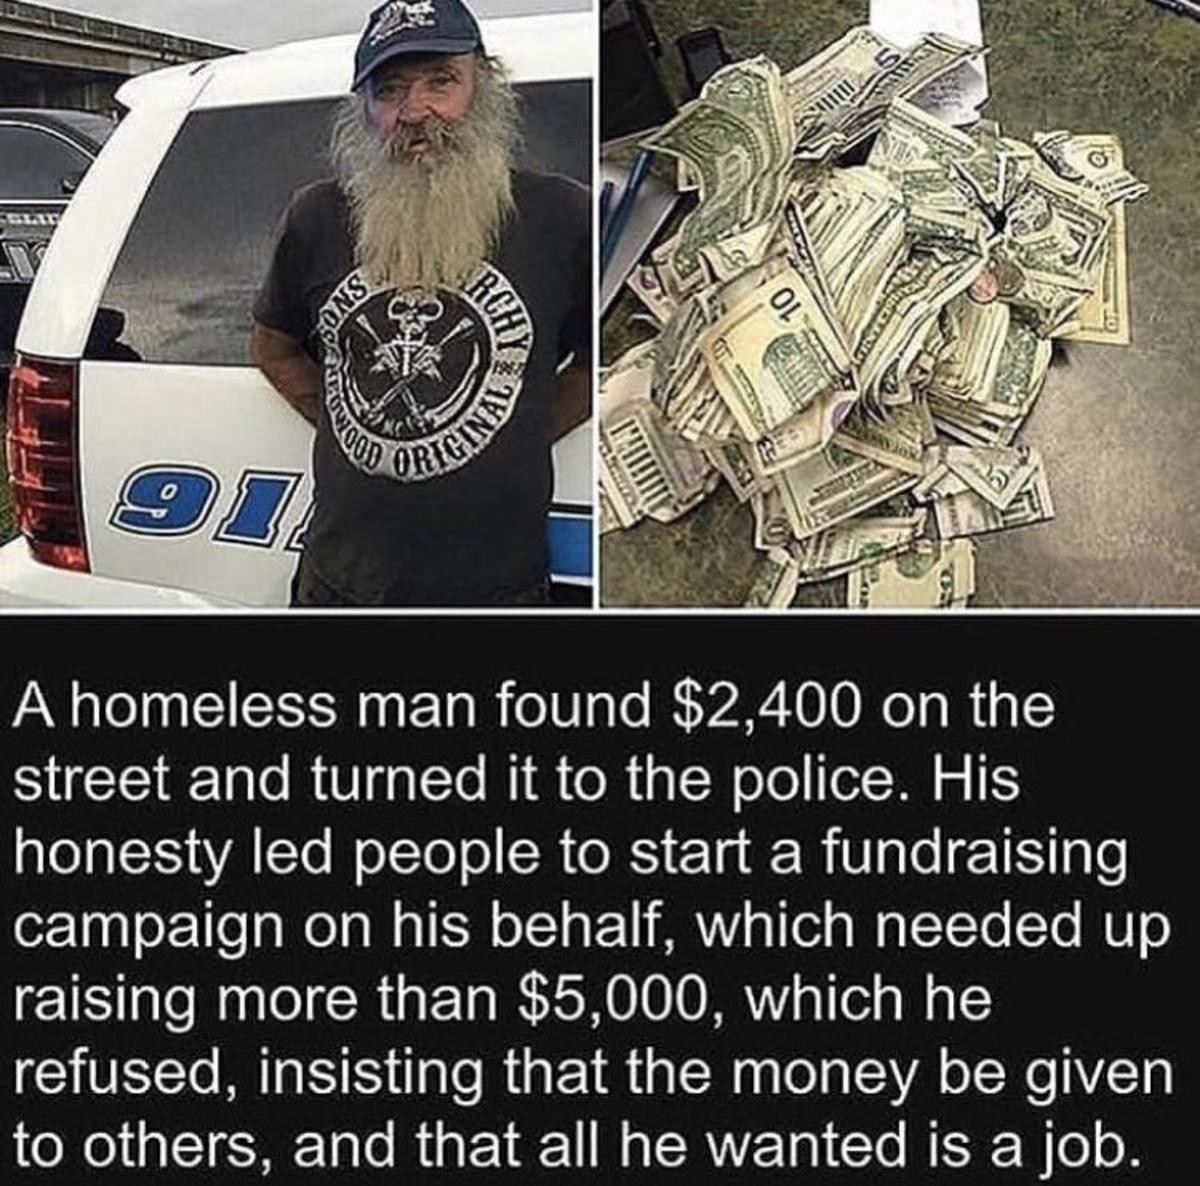 What a good guy. .. I remember a story, where a homeless man gave a woman bus fare since she was short She started a funding campaign that raised more than $50,000 for the man She